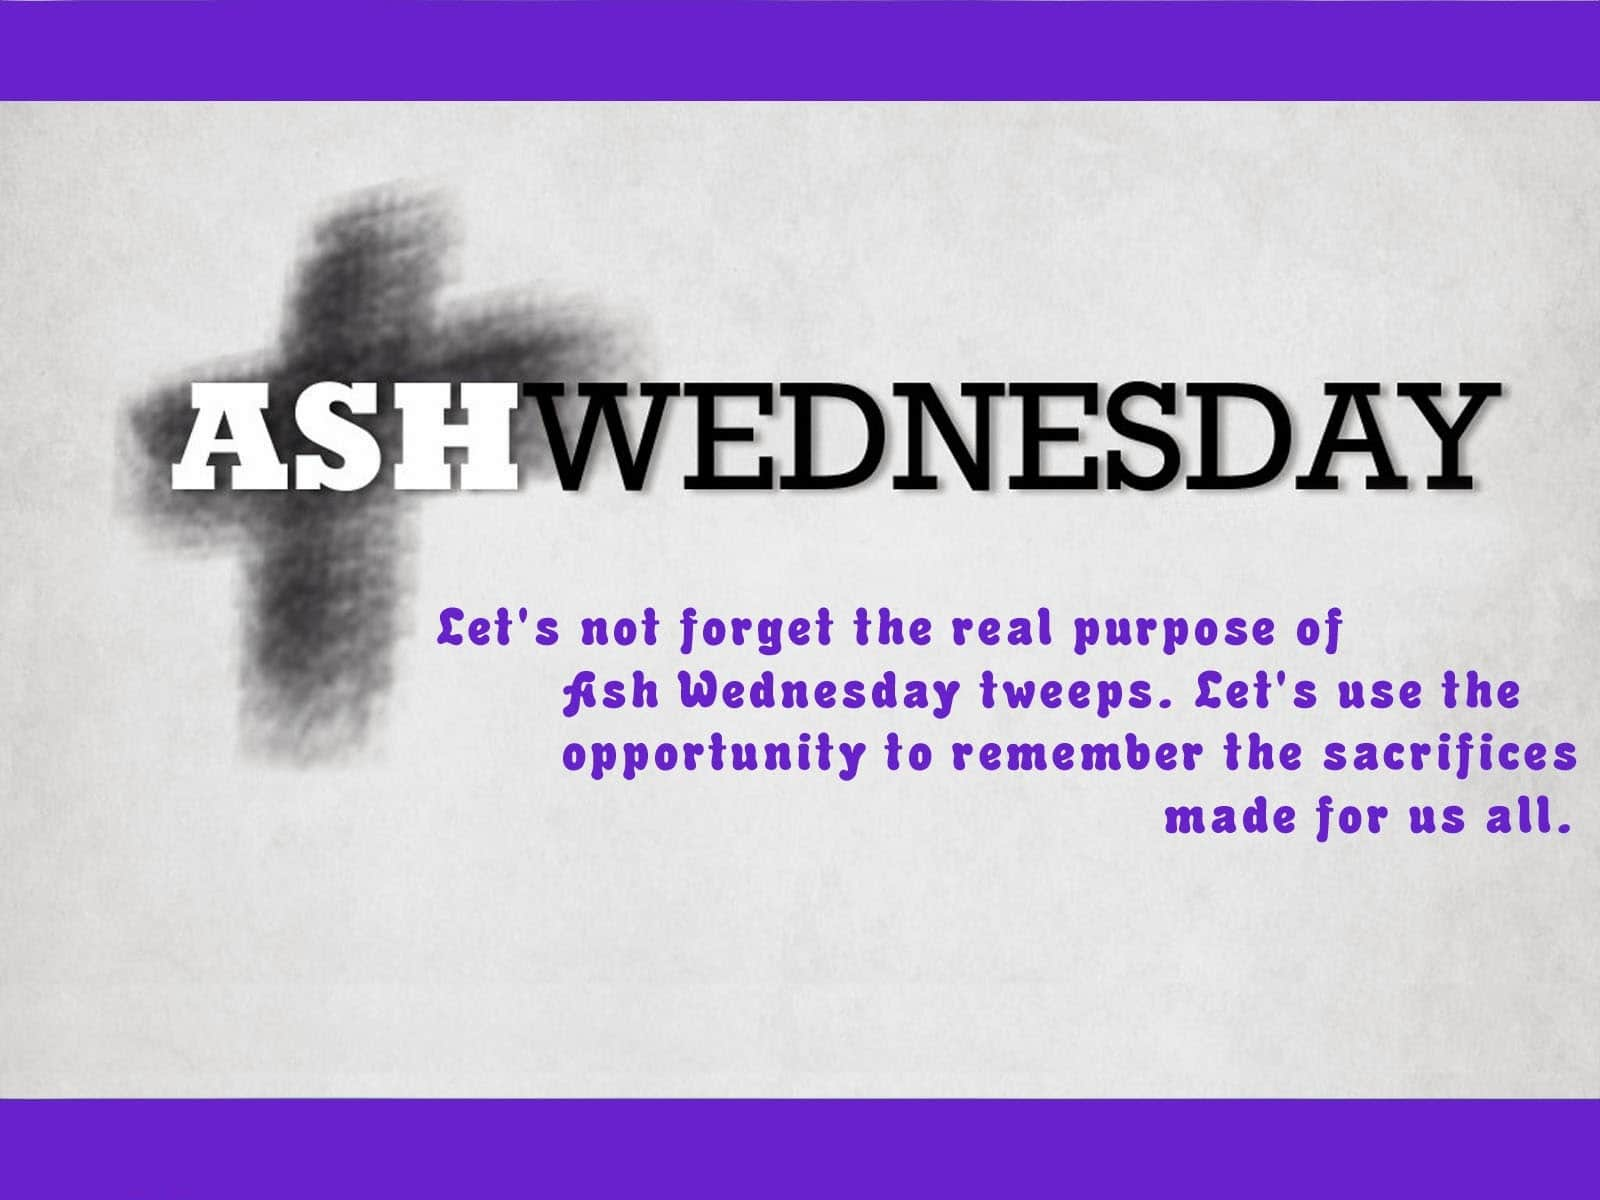 Ash Wednesday 2018 Greetings